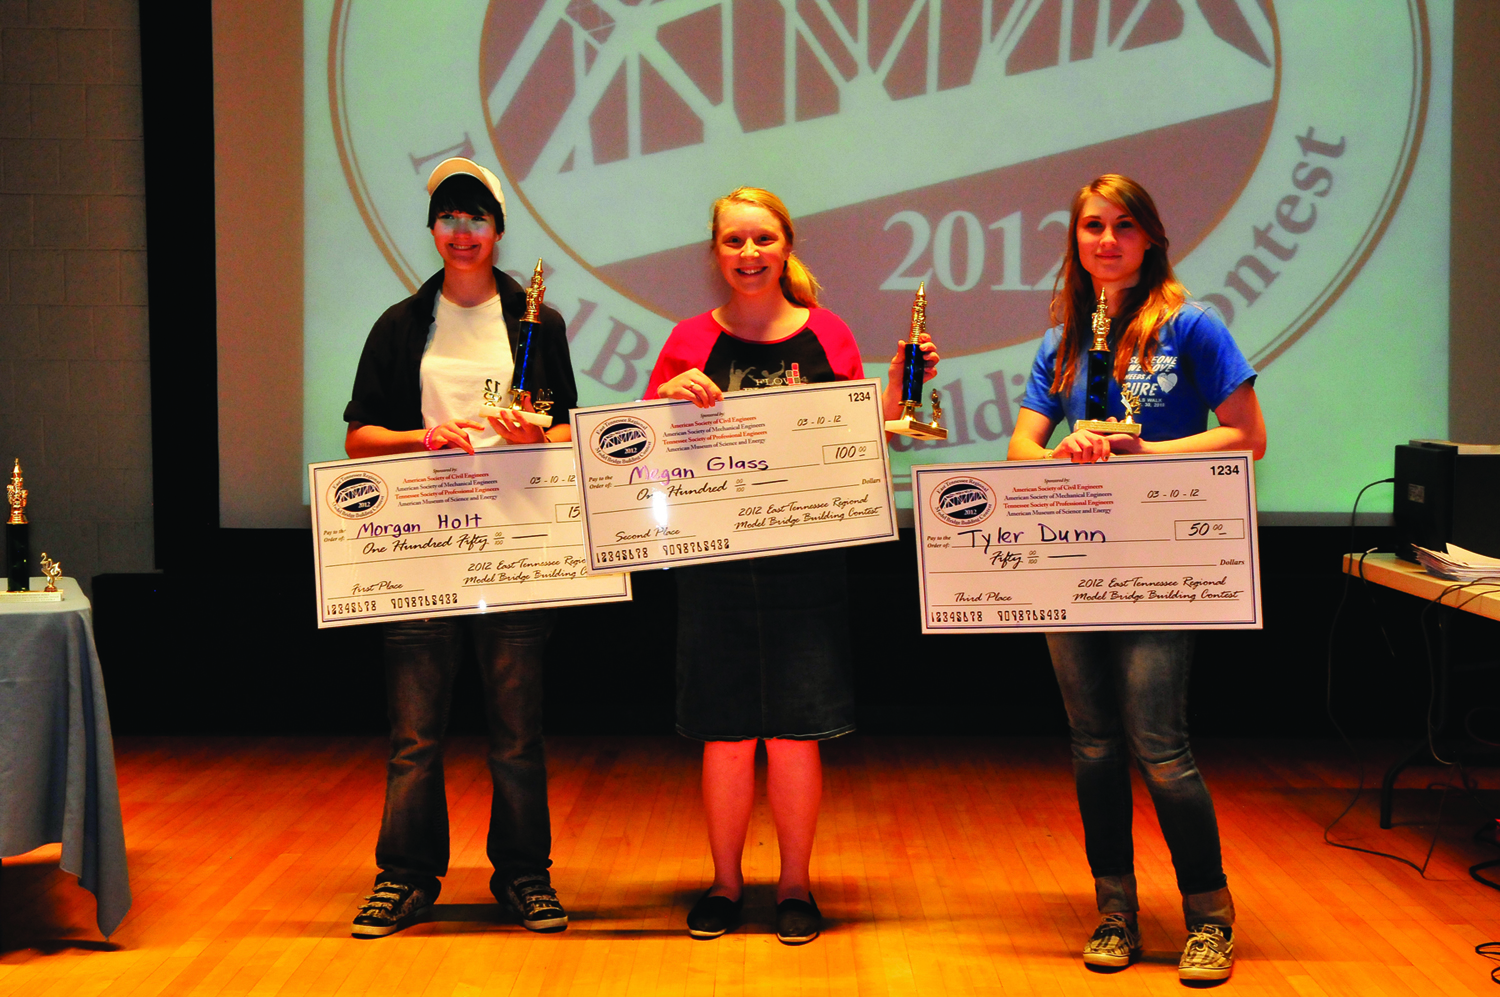 Blackman High School students captured the top three places in the Senior High Division (grades 9-12) of the East Tennessee Model Bridge Building Contest.  Receiving a trophy and cash award from left are Morgan Holt, first place and $150, Megan Glass, second place and $100 and Tyler Dunn, third and $50.  There were a total of 91 model bridges entered in the March 10 contest for students in grades 7 - 12 at AMSE